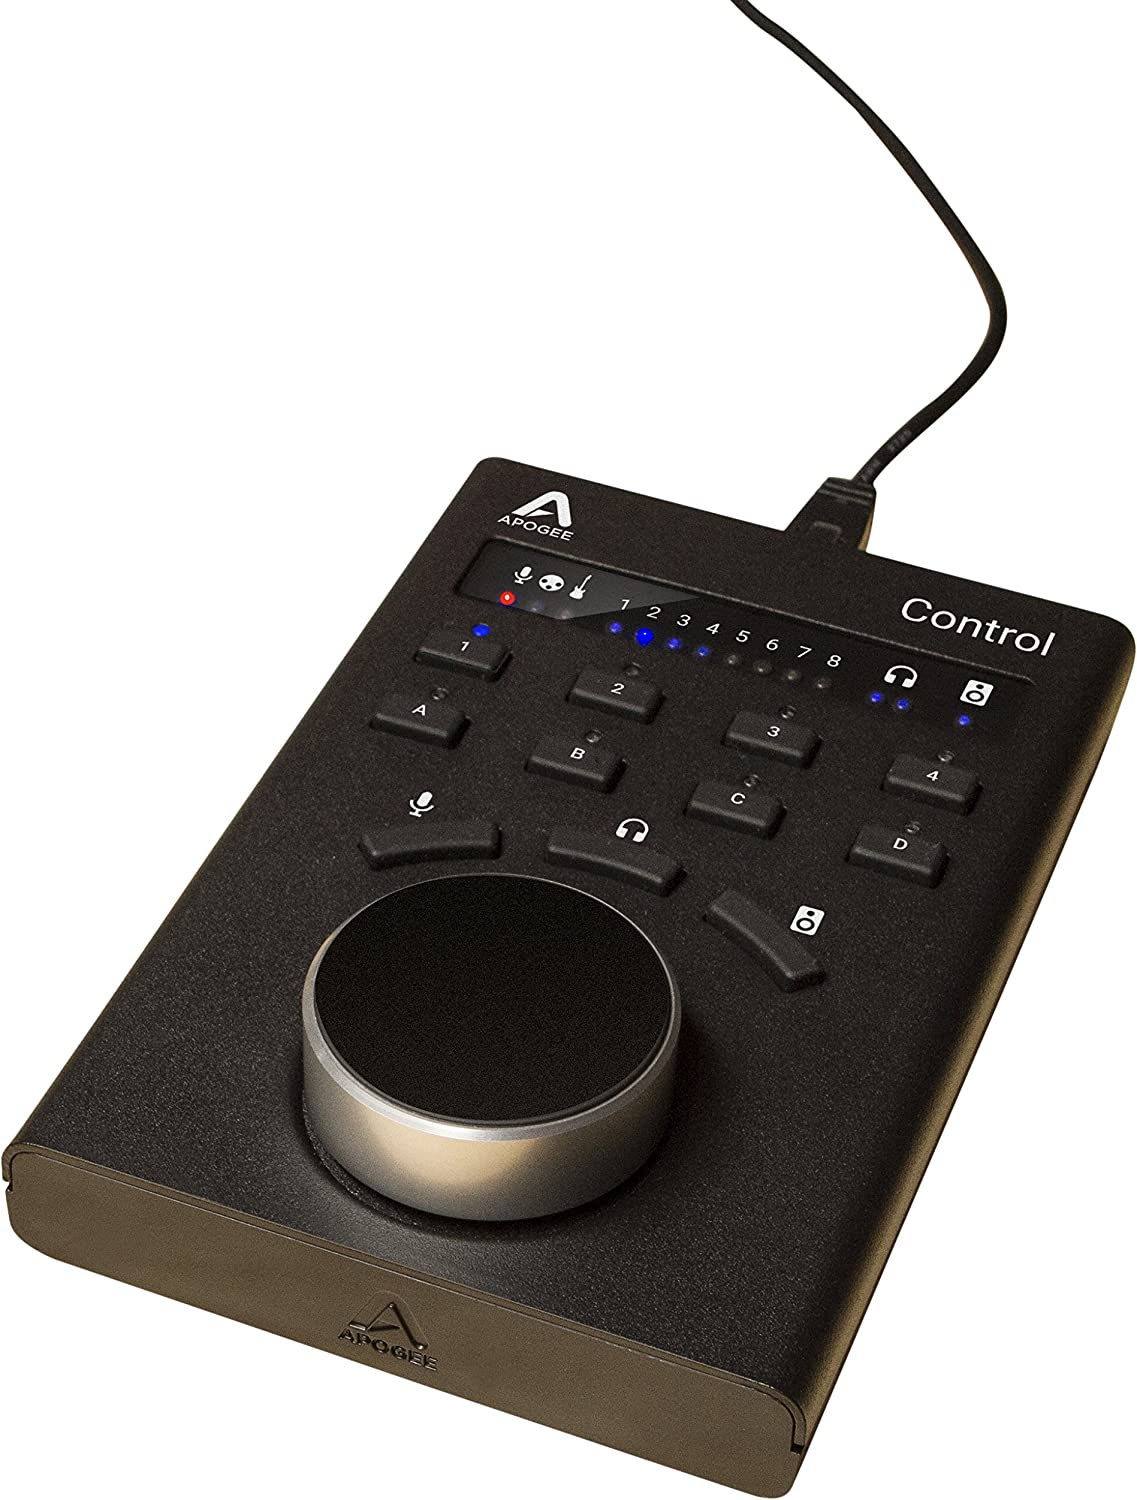 Apogee Control Hardware Remote For Element series, Ensemble Thunderbolt, and Symphony I/O MK II